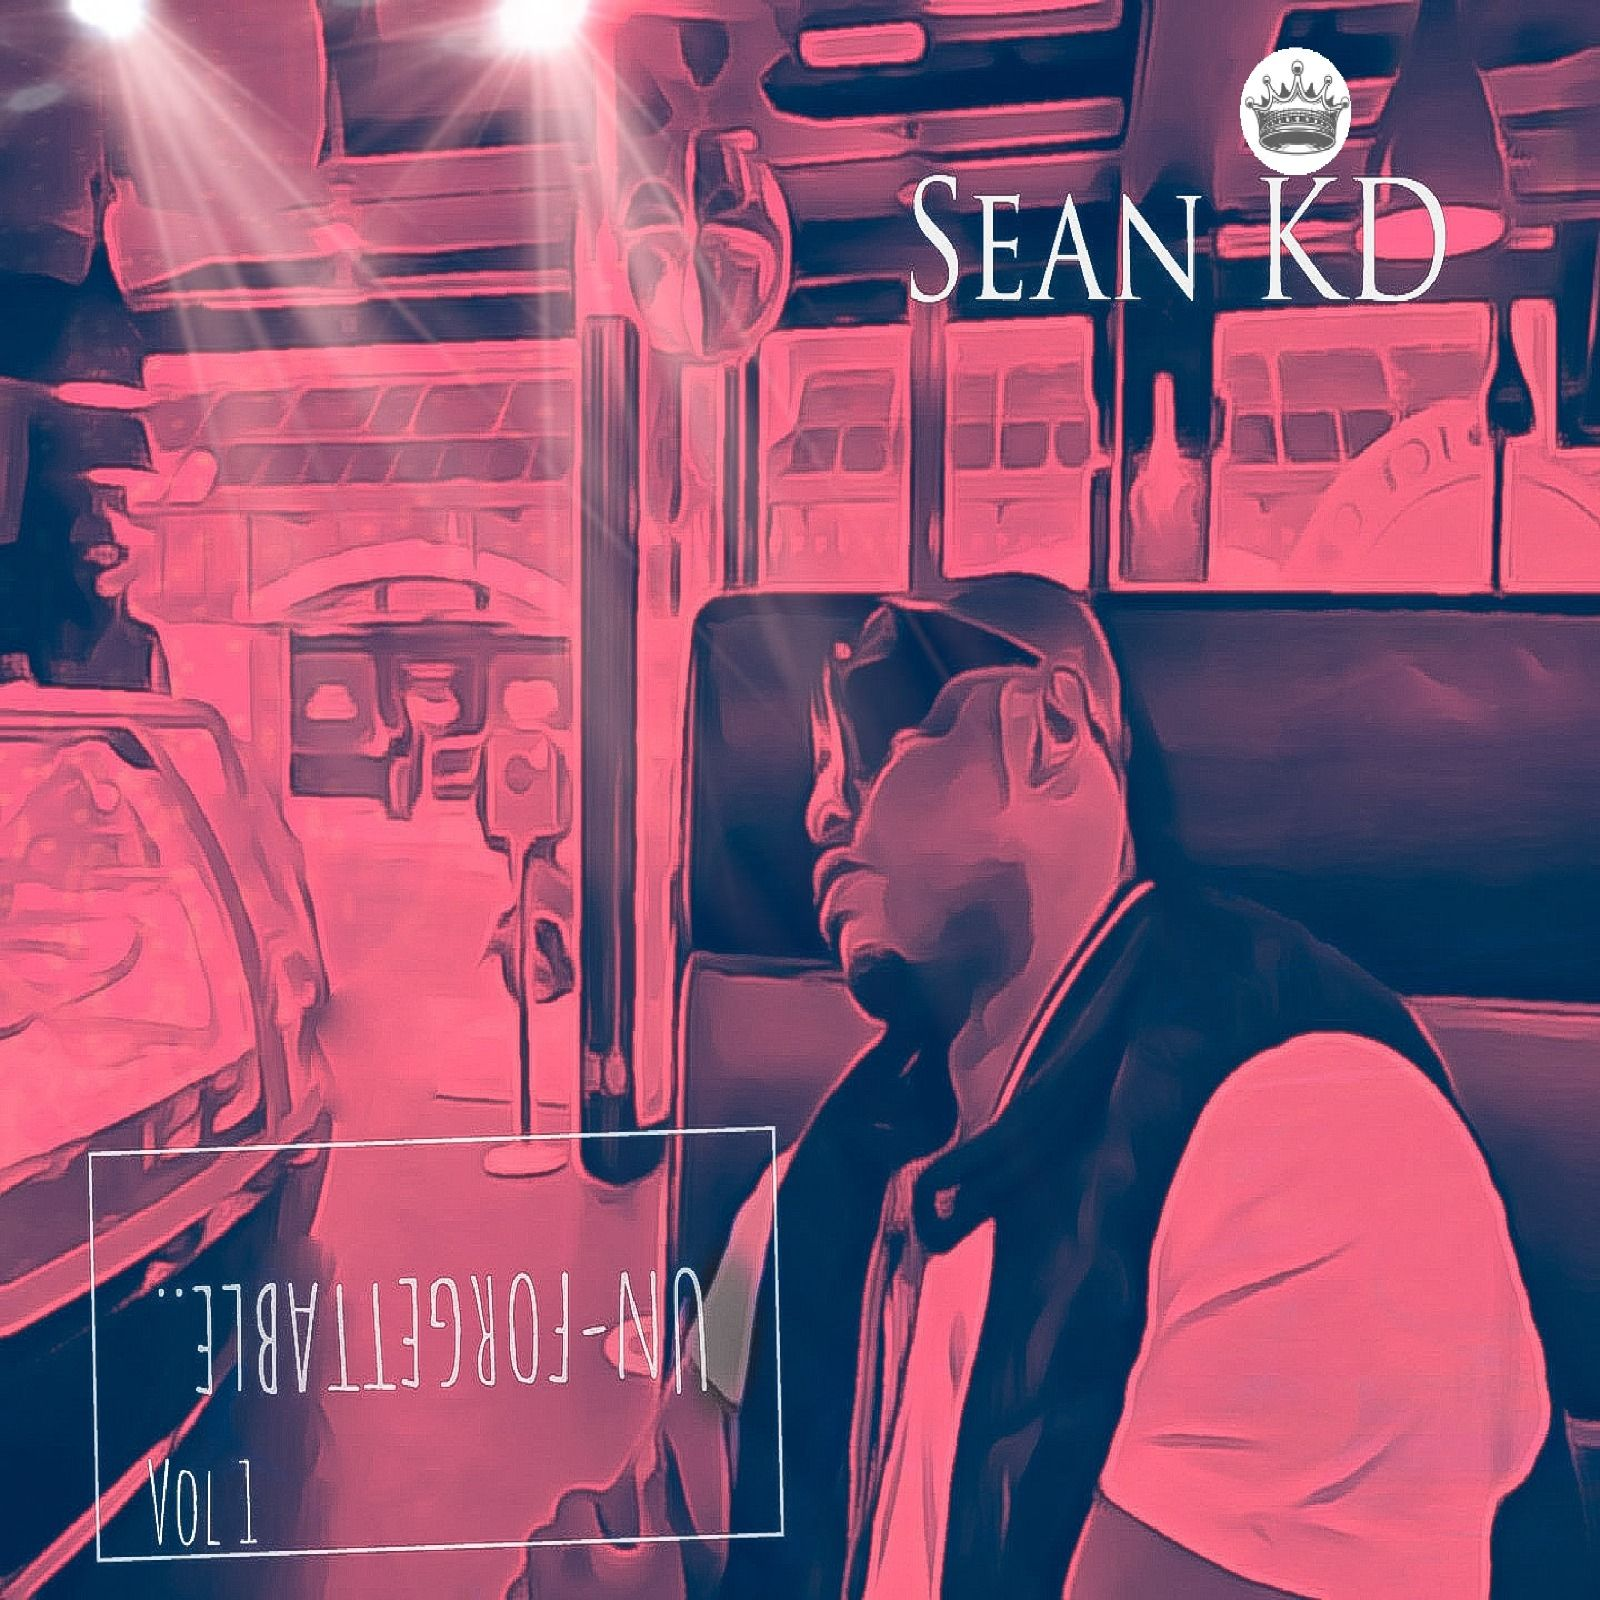 Sean KD - Unforgettable Vol. 1 (Album)